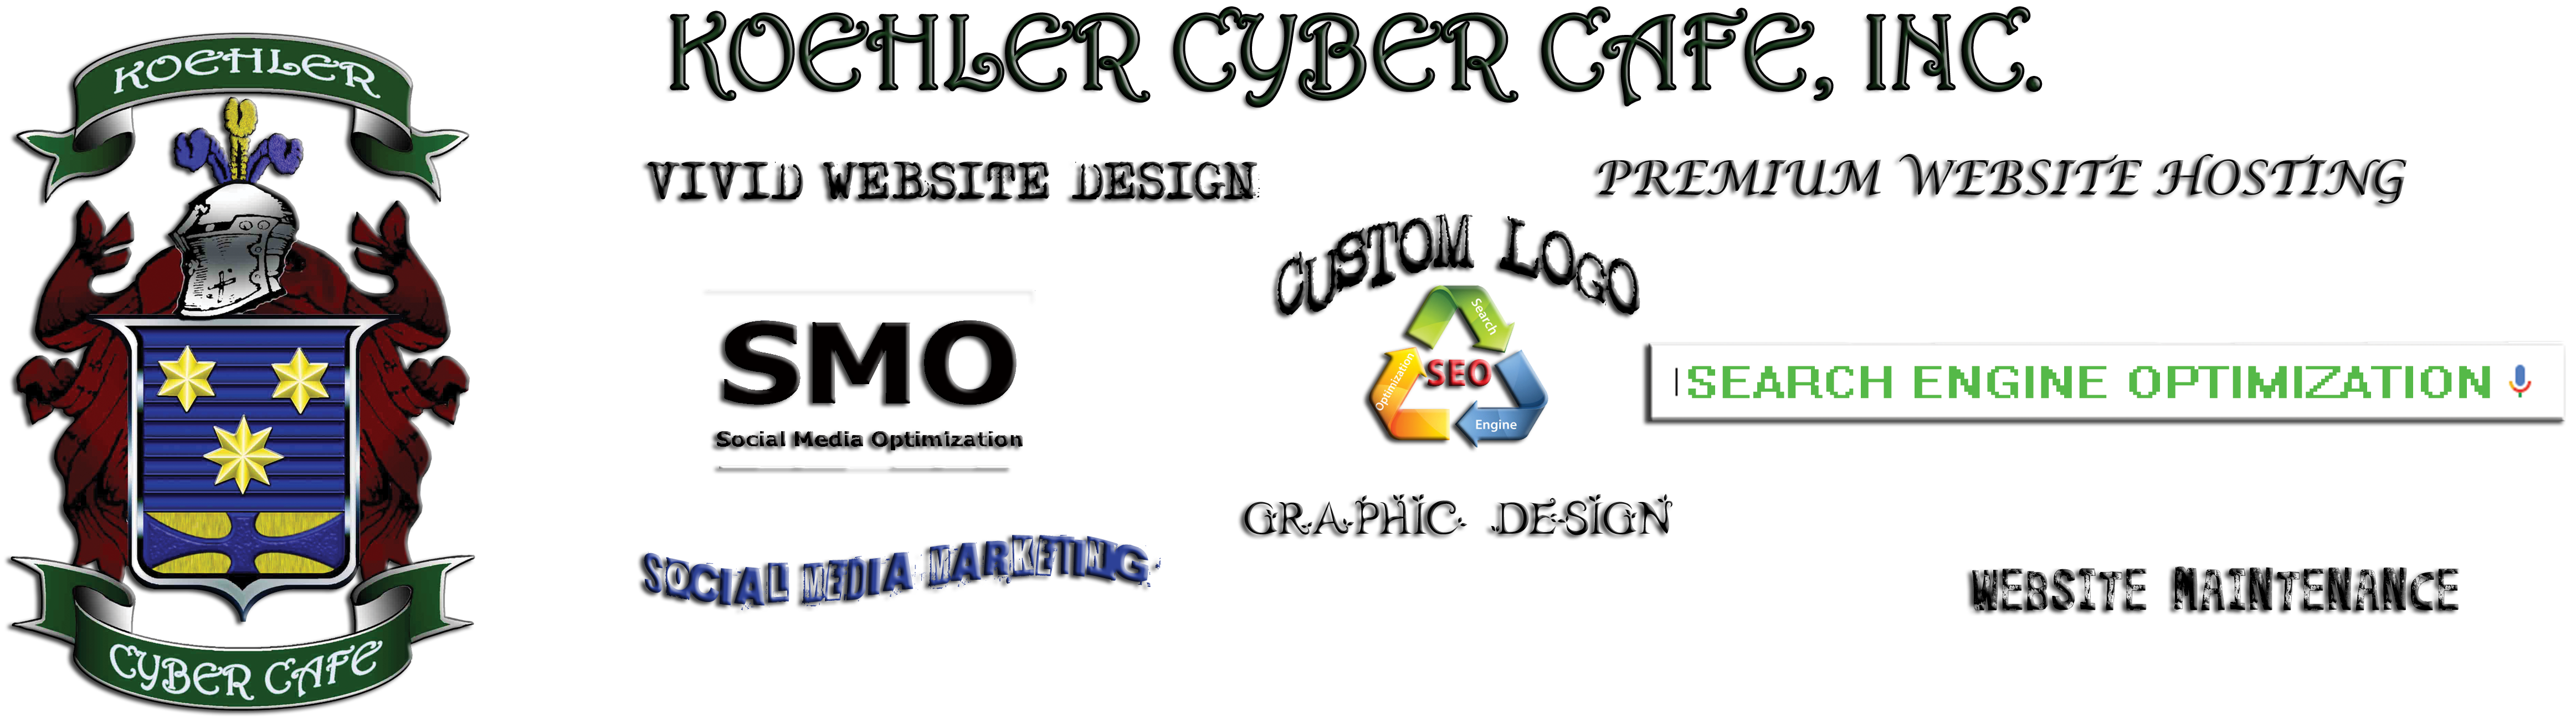 Koehler Cyber Cafe | Gardendale Alabama | Website Hosting | Website Design